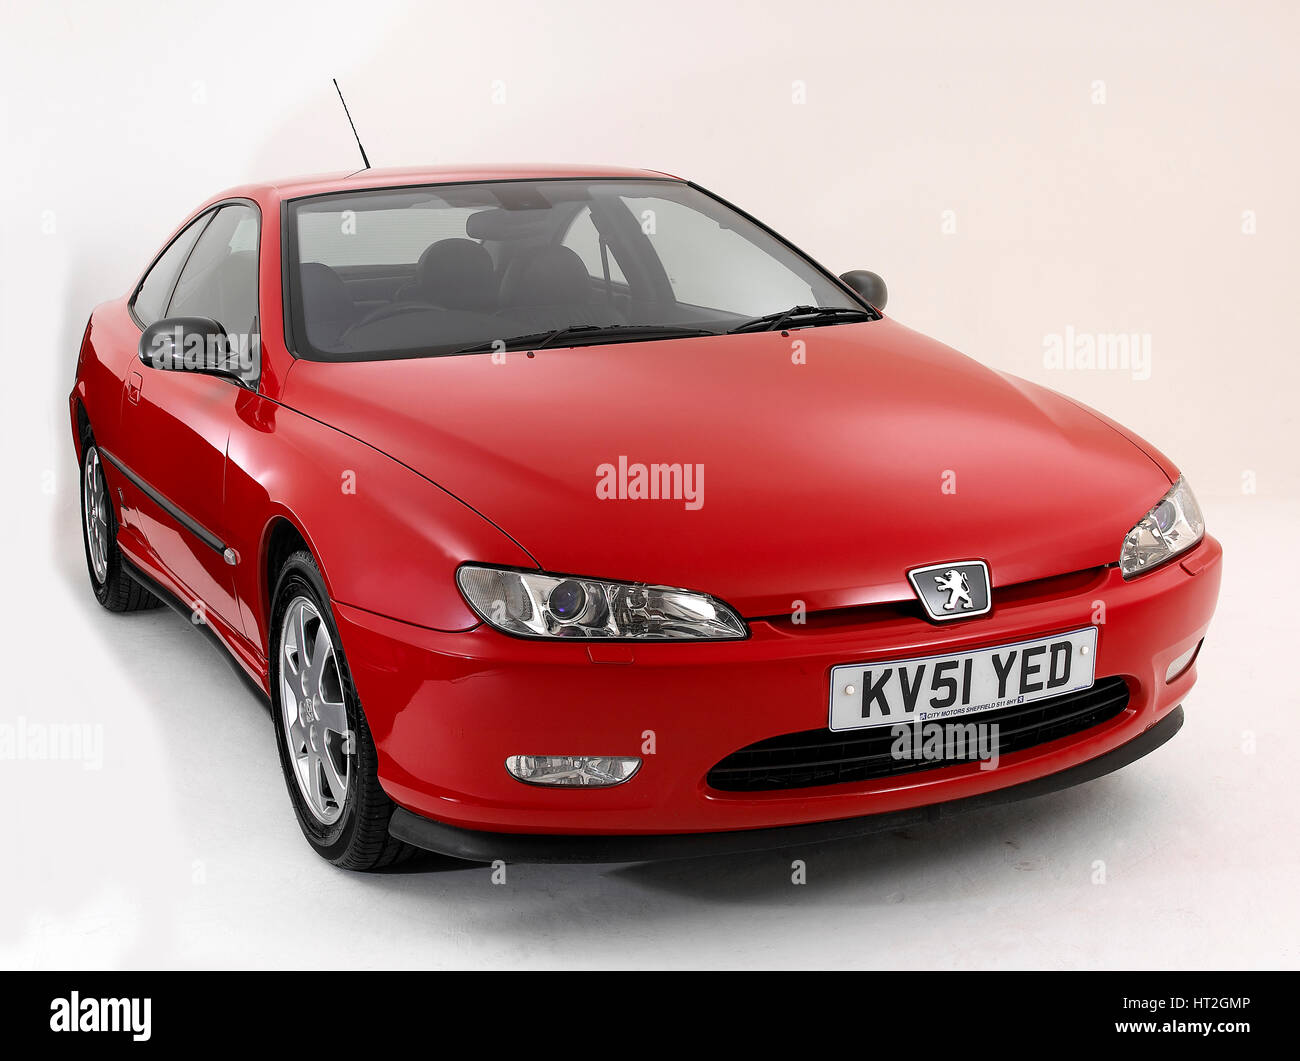 2001 Peugeot 406 Coupe Artist Unknown Stock Photo Alamy